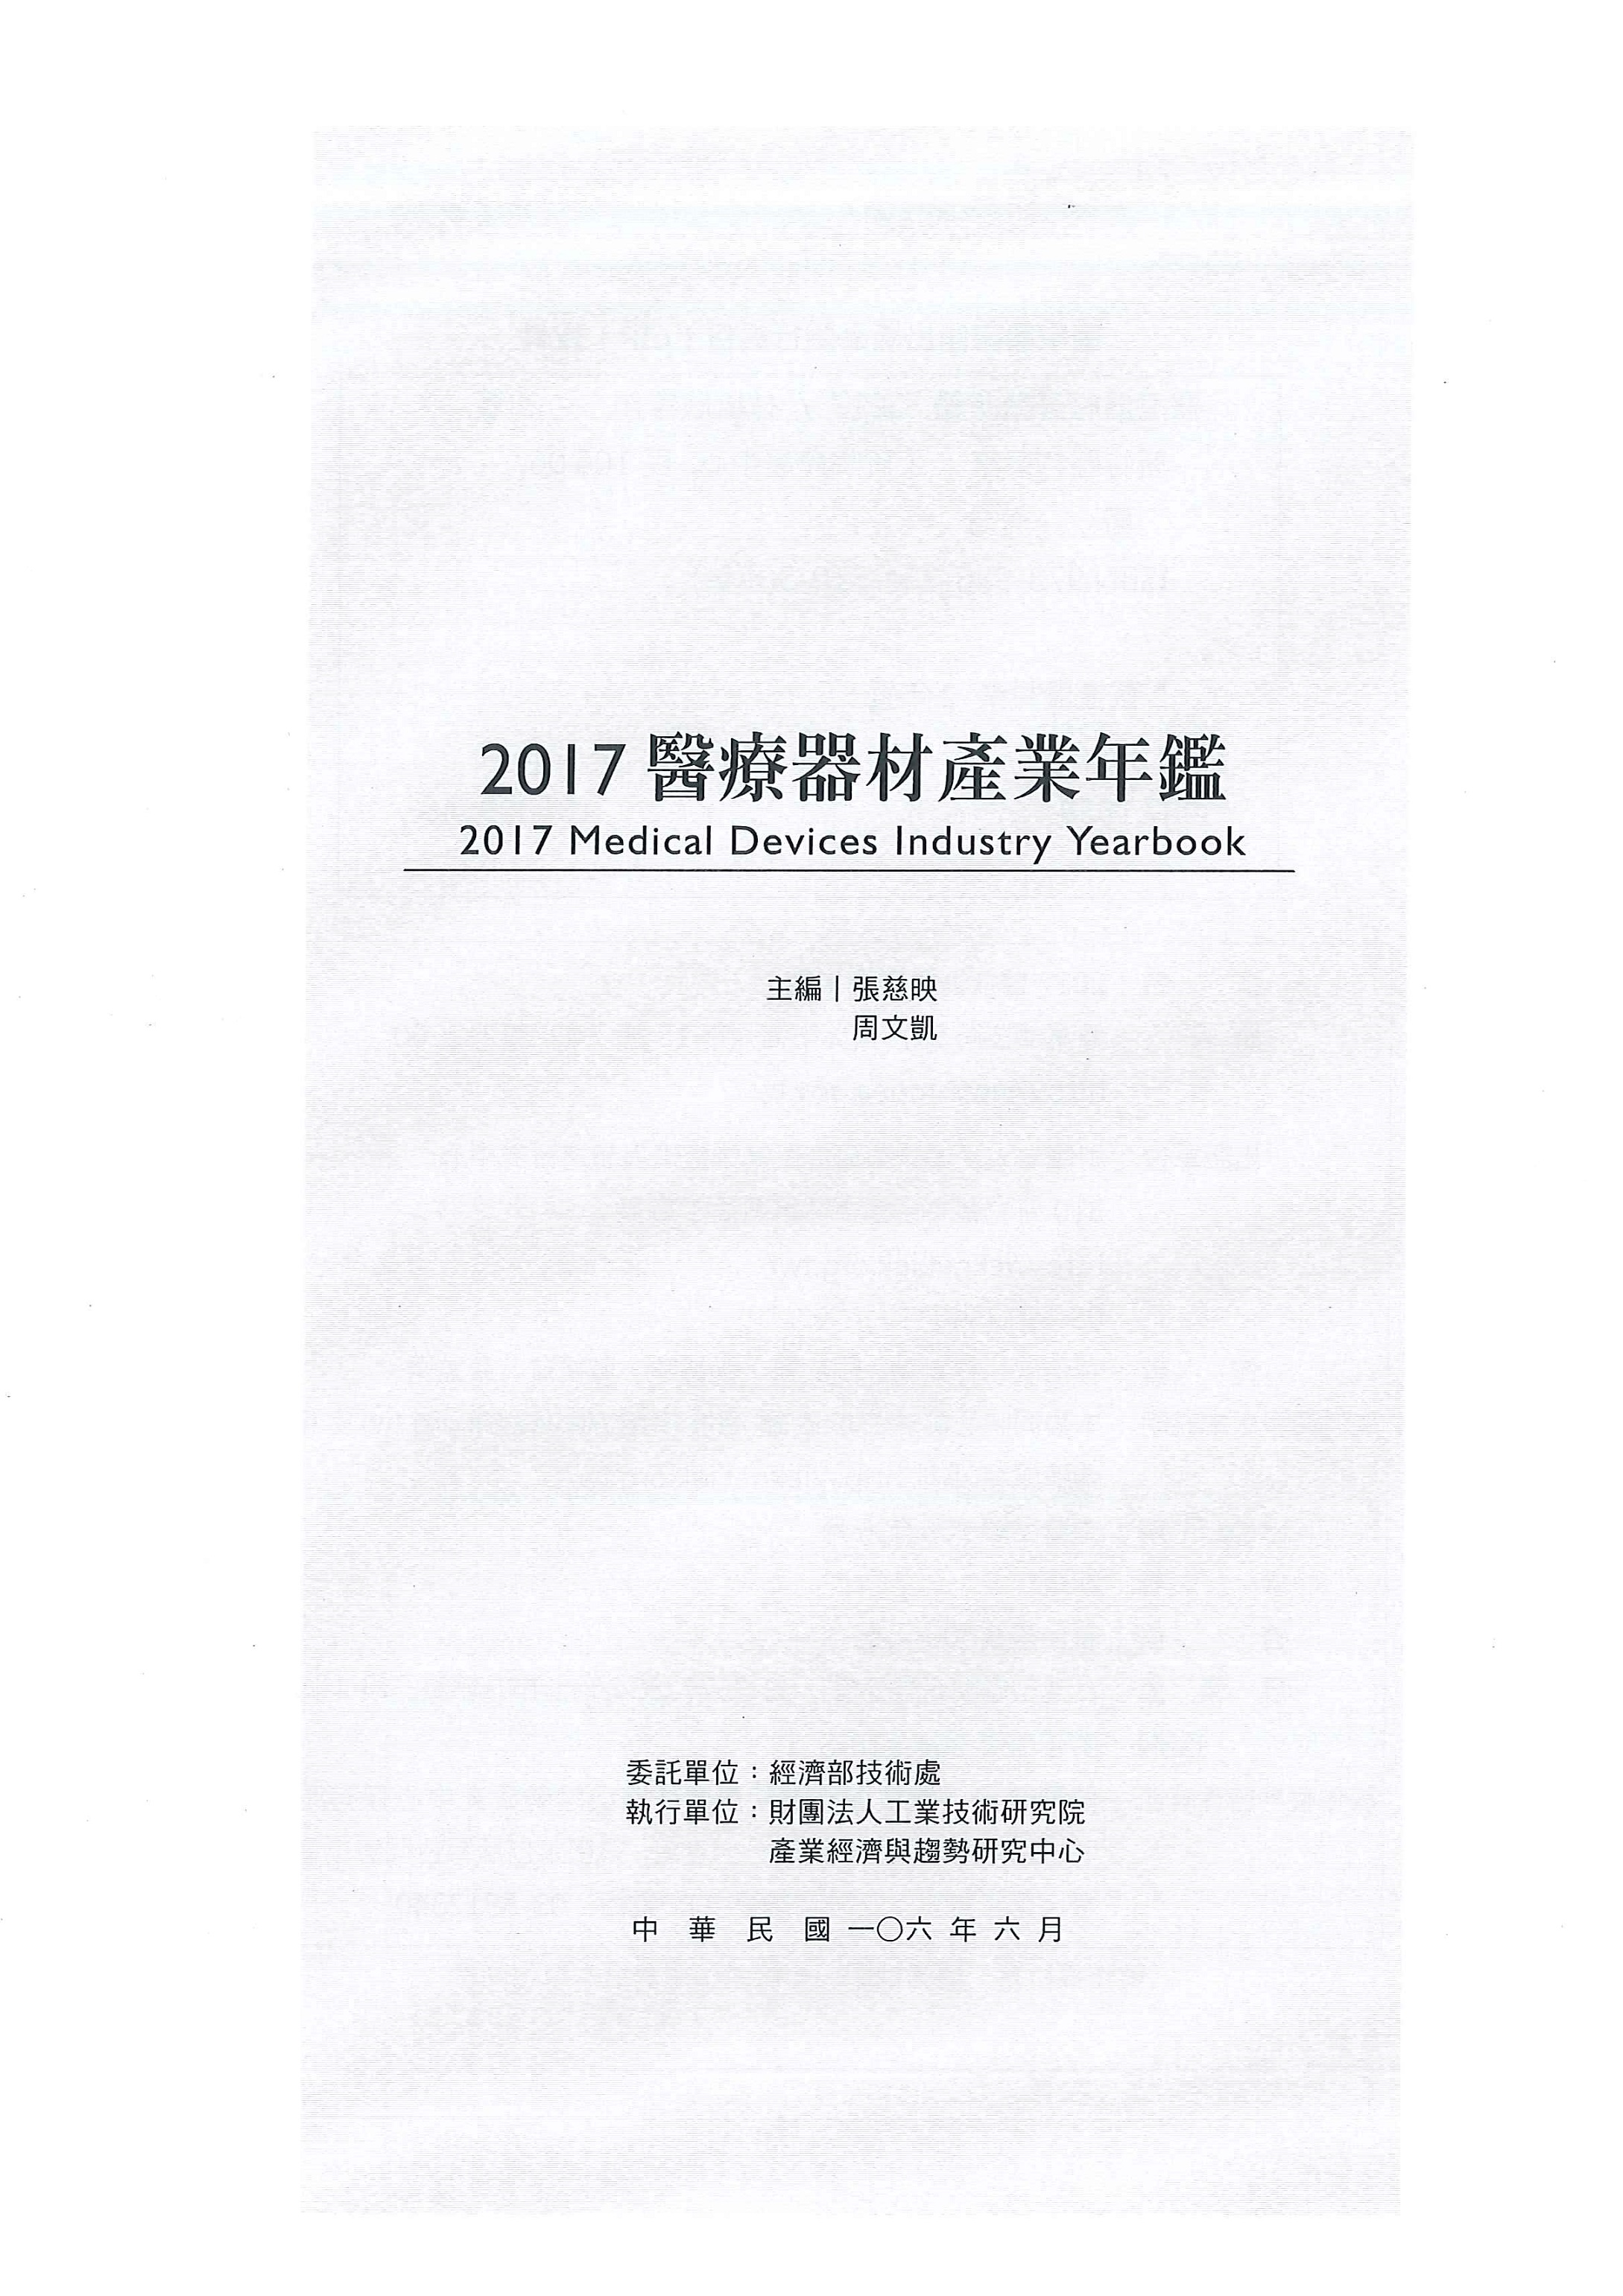 醫療器材產業年鑑=Medical devices industry yearbook